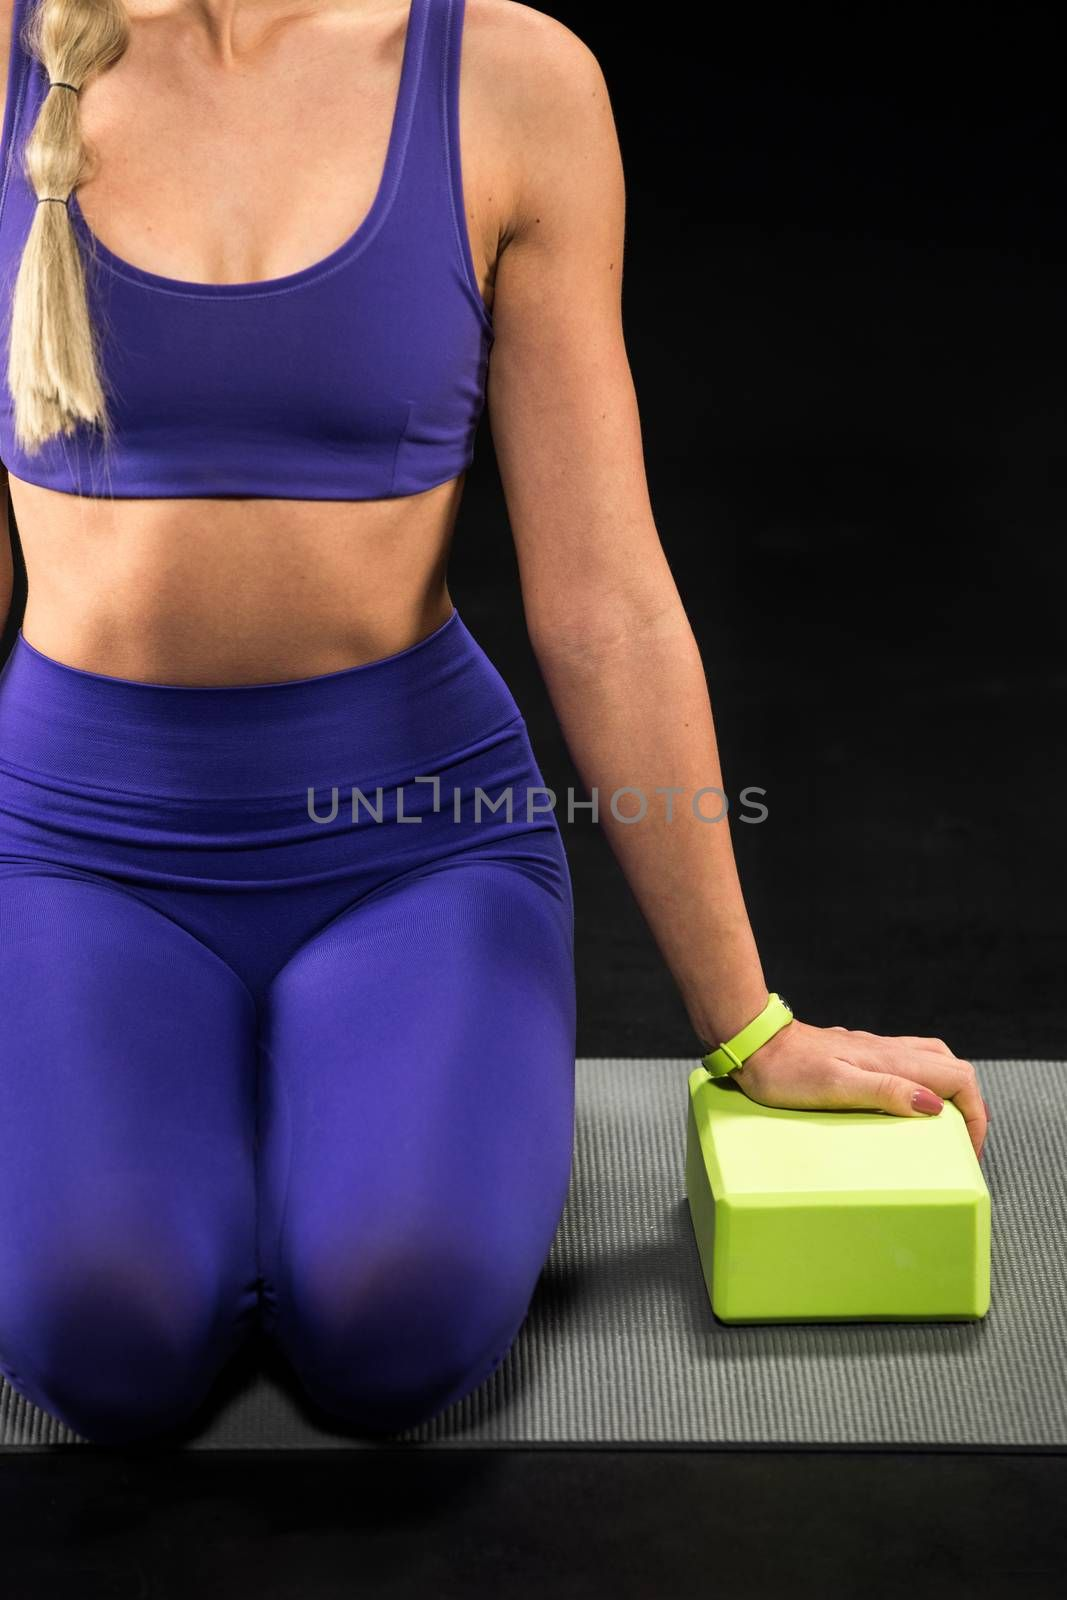 Partial view of sportswoman sitting on yoga mat and exercising with yoga block